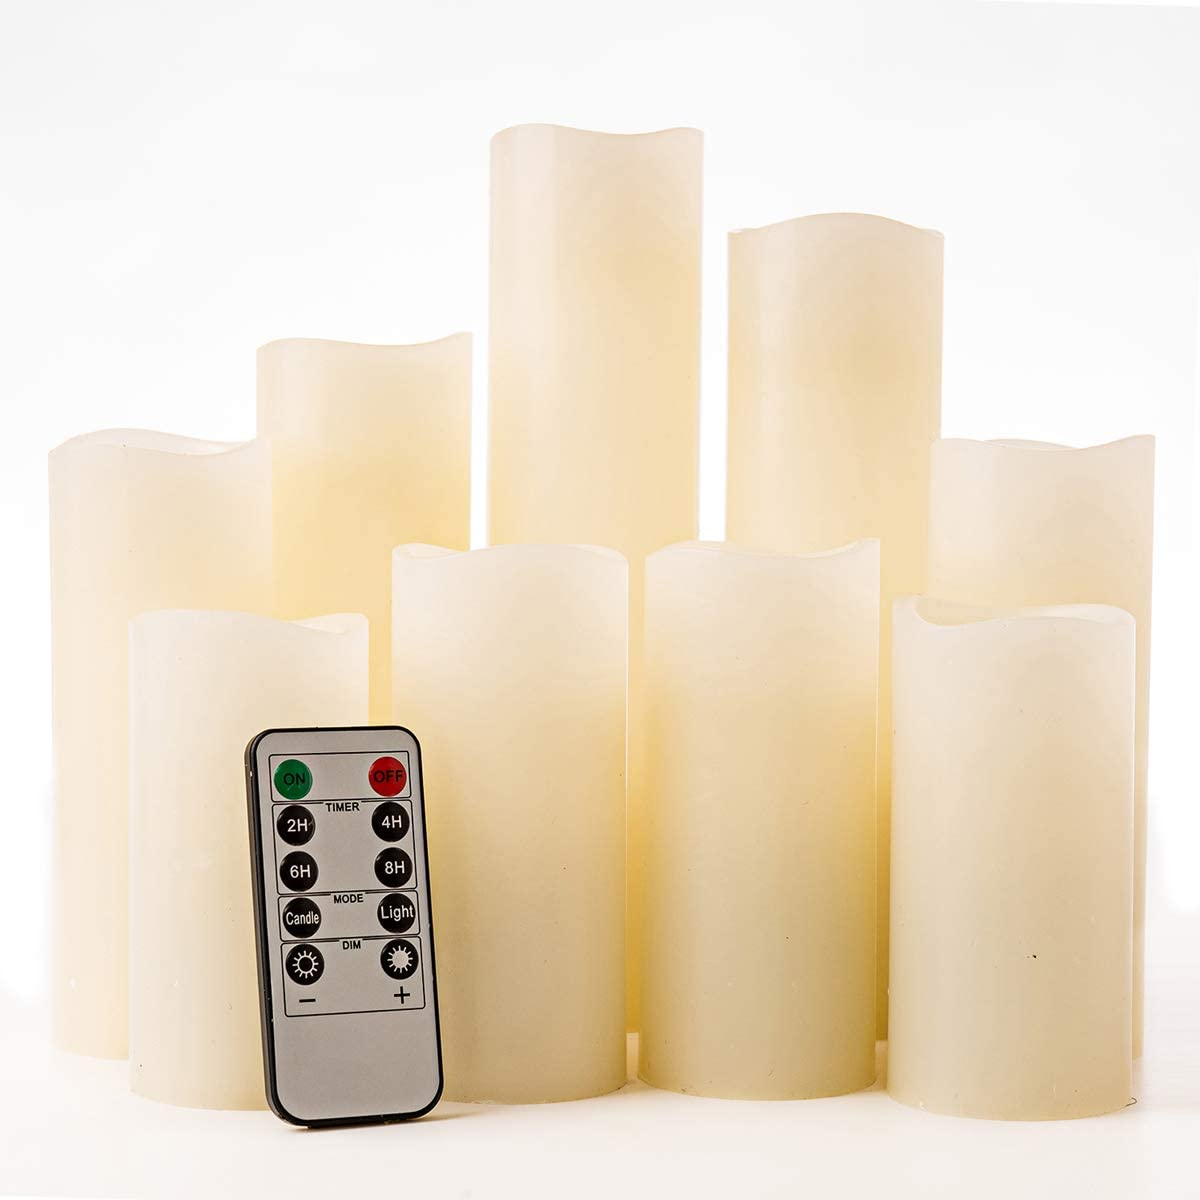 Ewalkor Flameless Candles, Battery Operated Electric LED Pillar Candles with 10-Key Remote Control and Timer, Set of 9 Ivory White Fake Candles Set